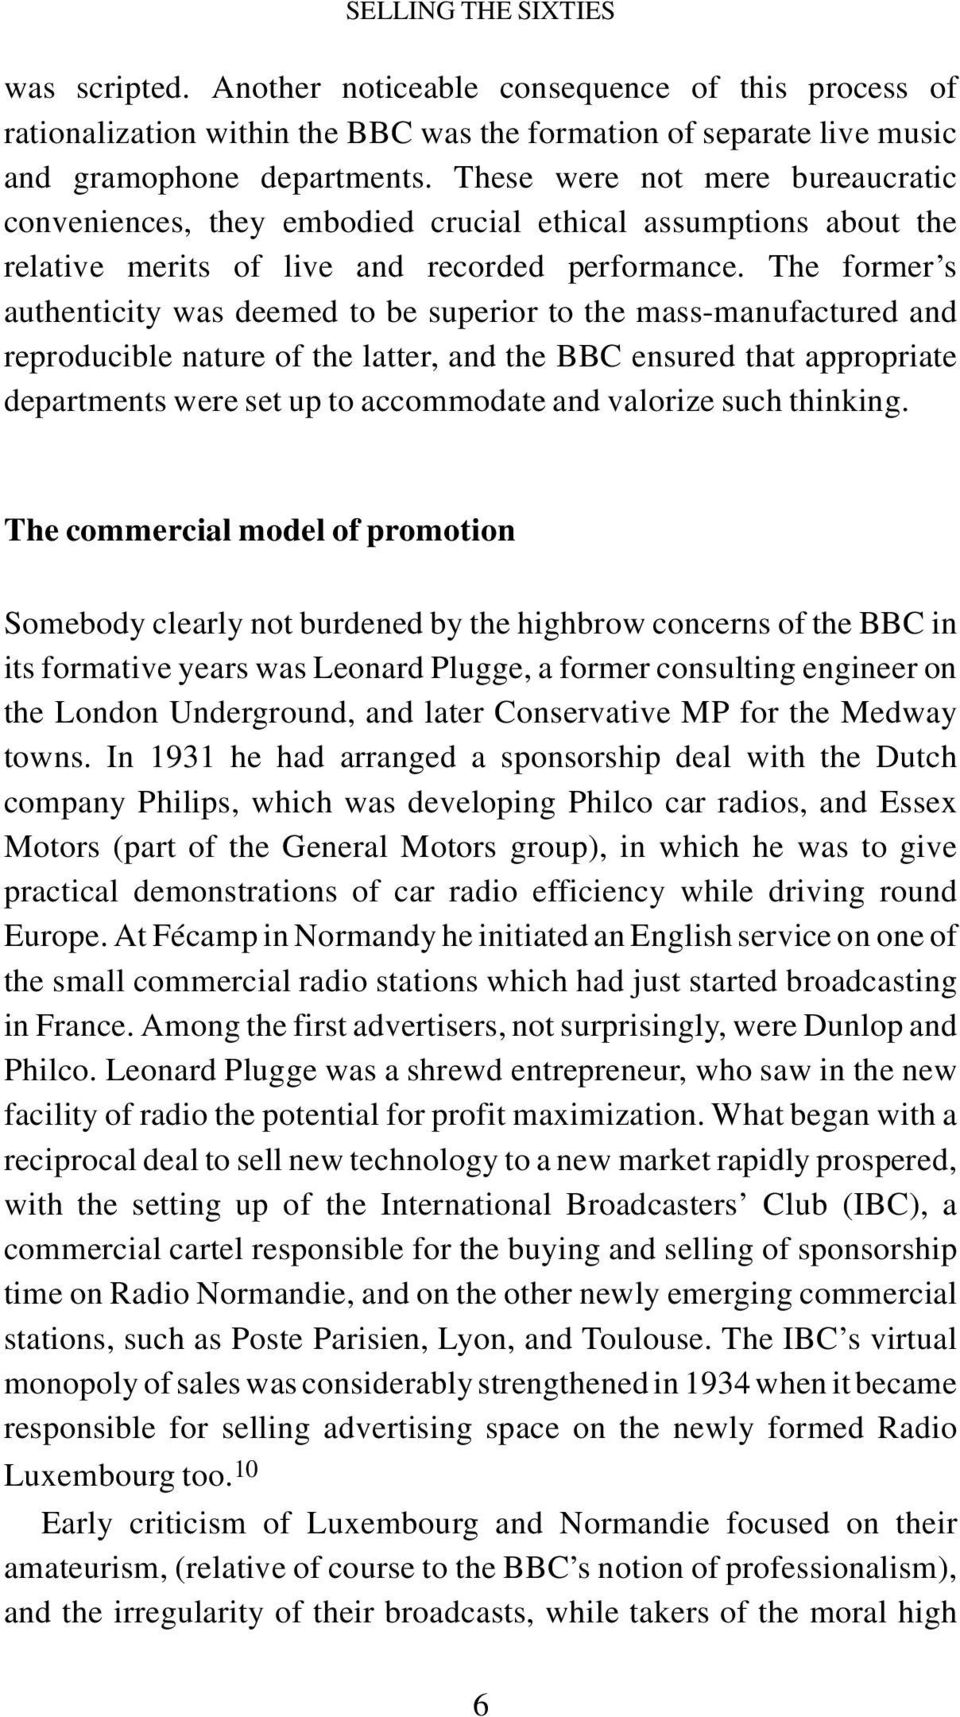 The former s authenticity was deemed to be superior to the mass-manufactured and reproducible nature of the latter, and the BBC ensured that appropriate departments were set up to accommodate and